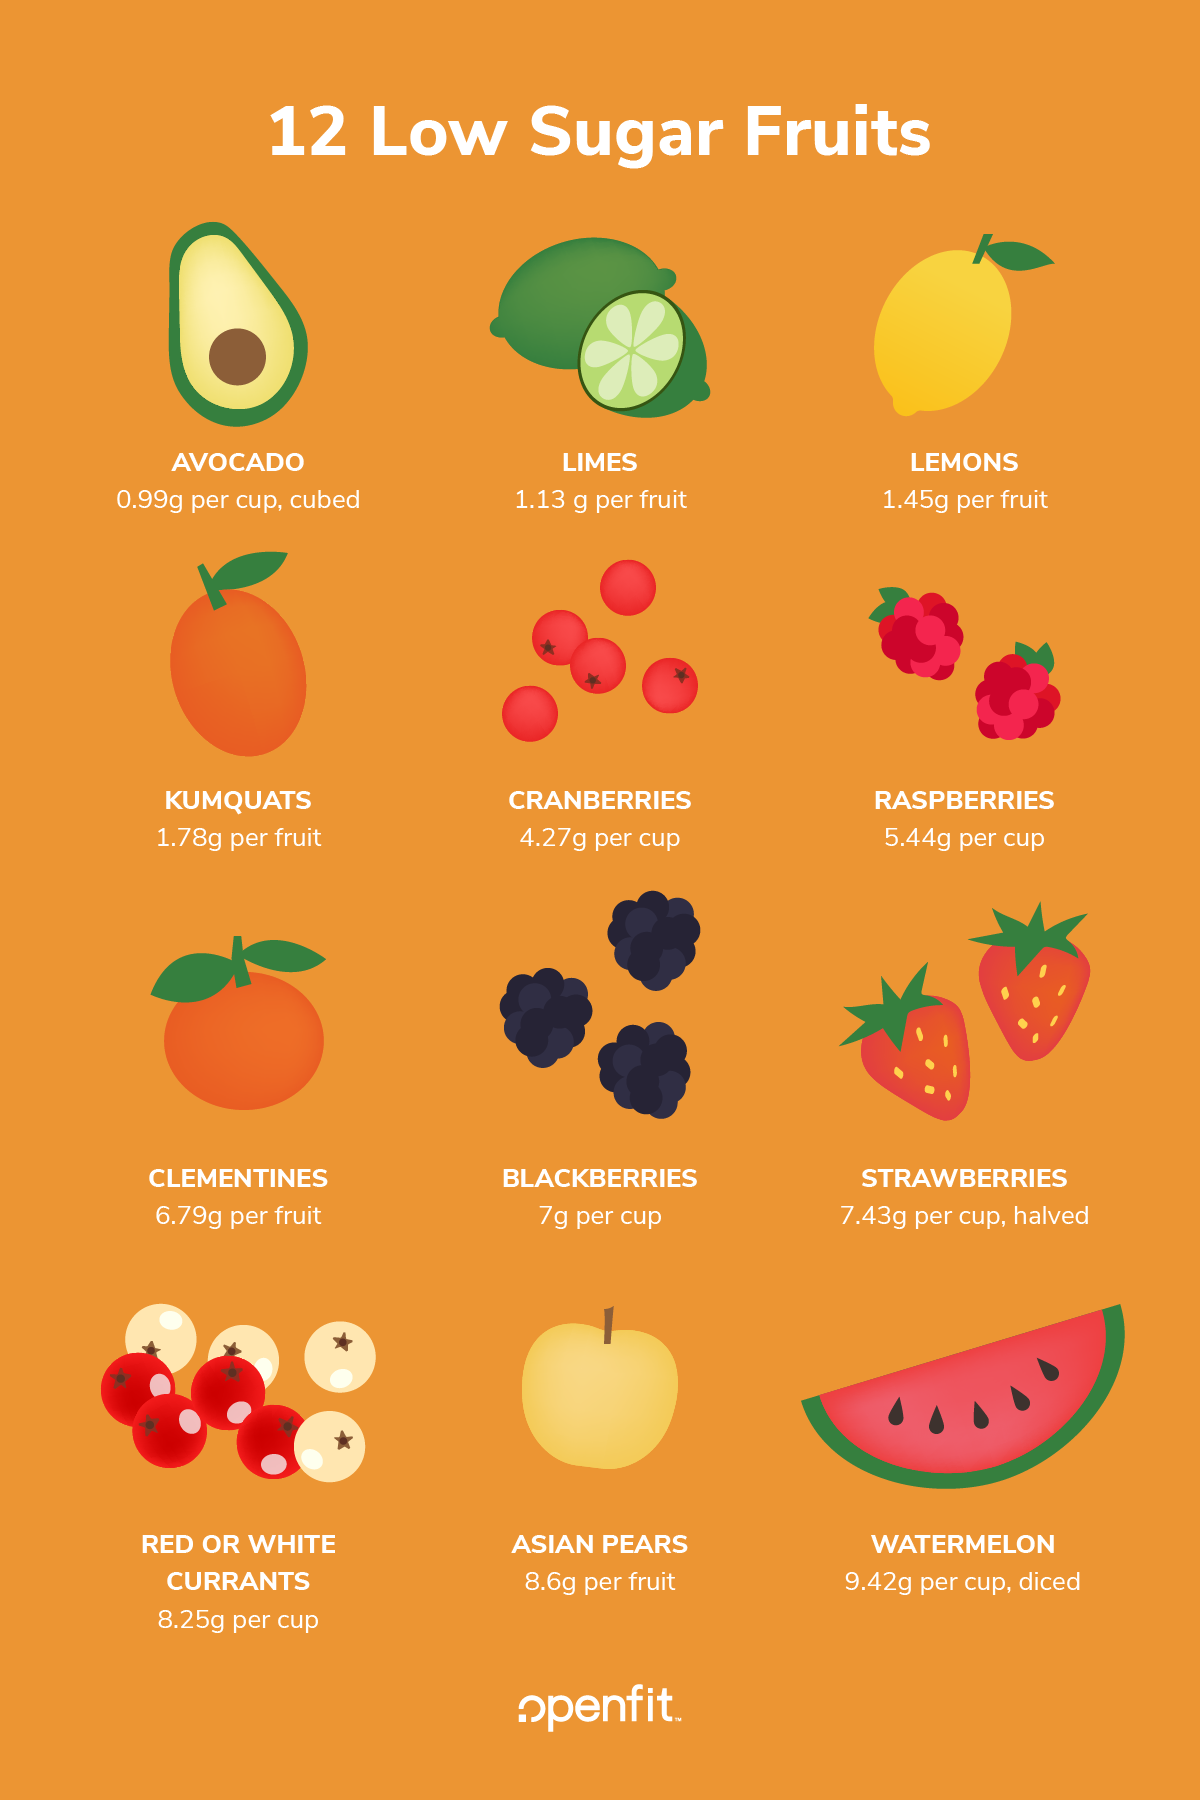 12 Low Sugar Fruits to Enjoy Including Berries, Limes, and ...